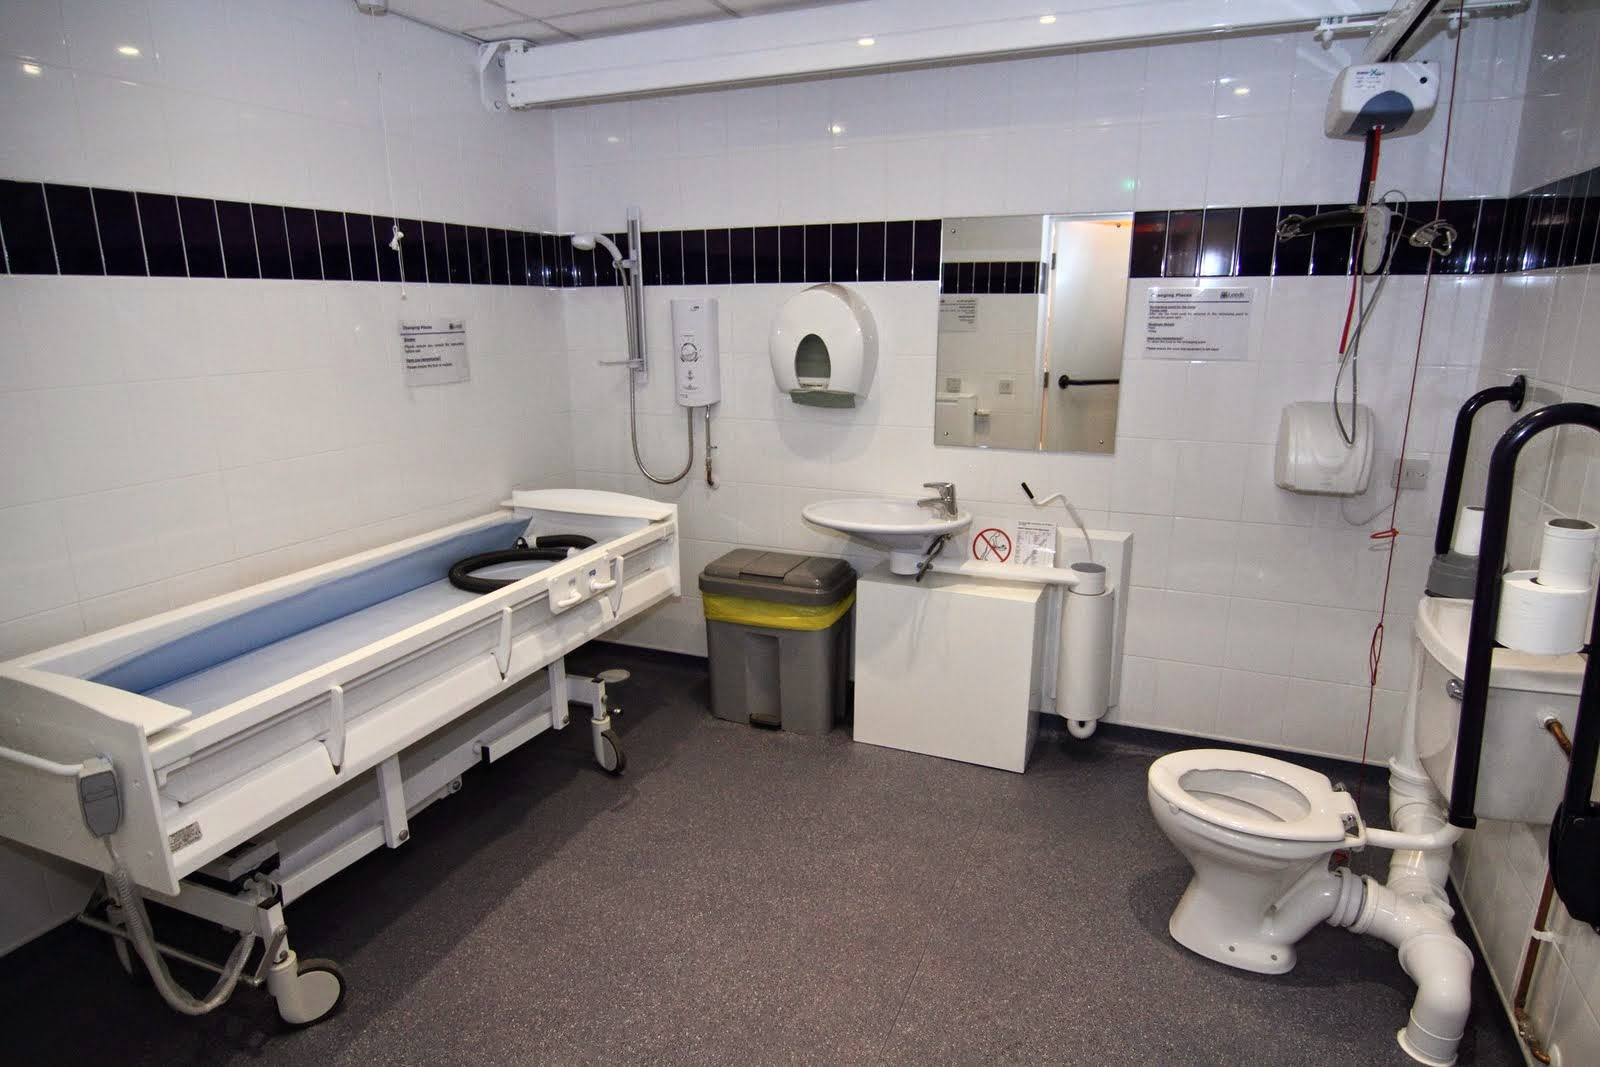 W.A.S.H FAIR: Toilet Helps Take Library into the Future for ...